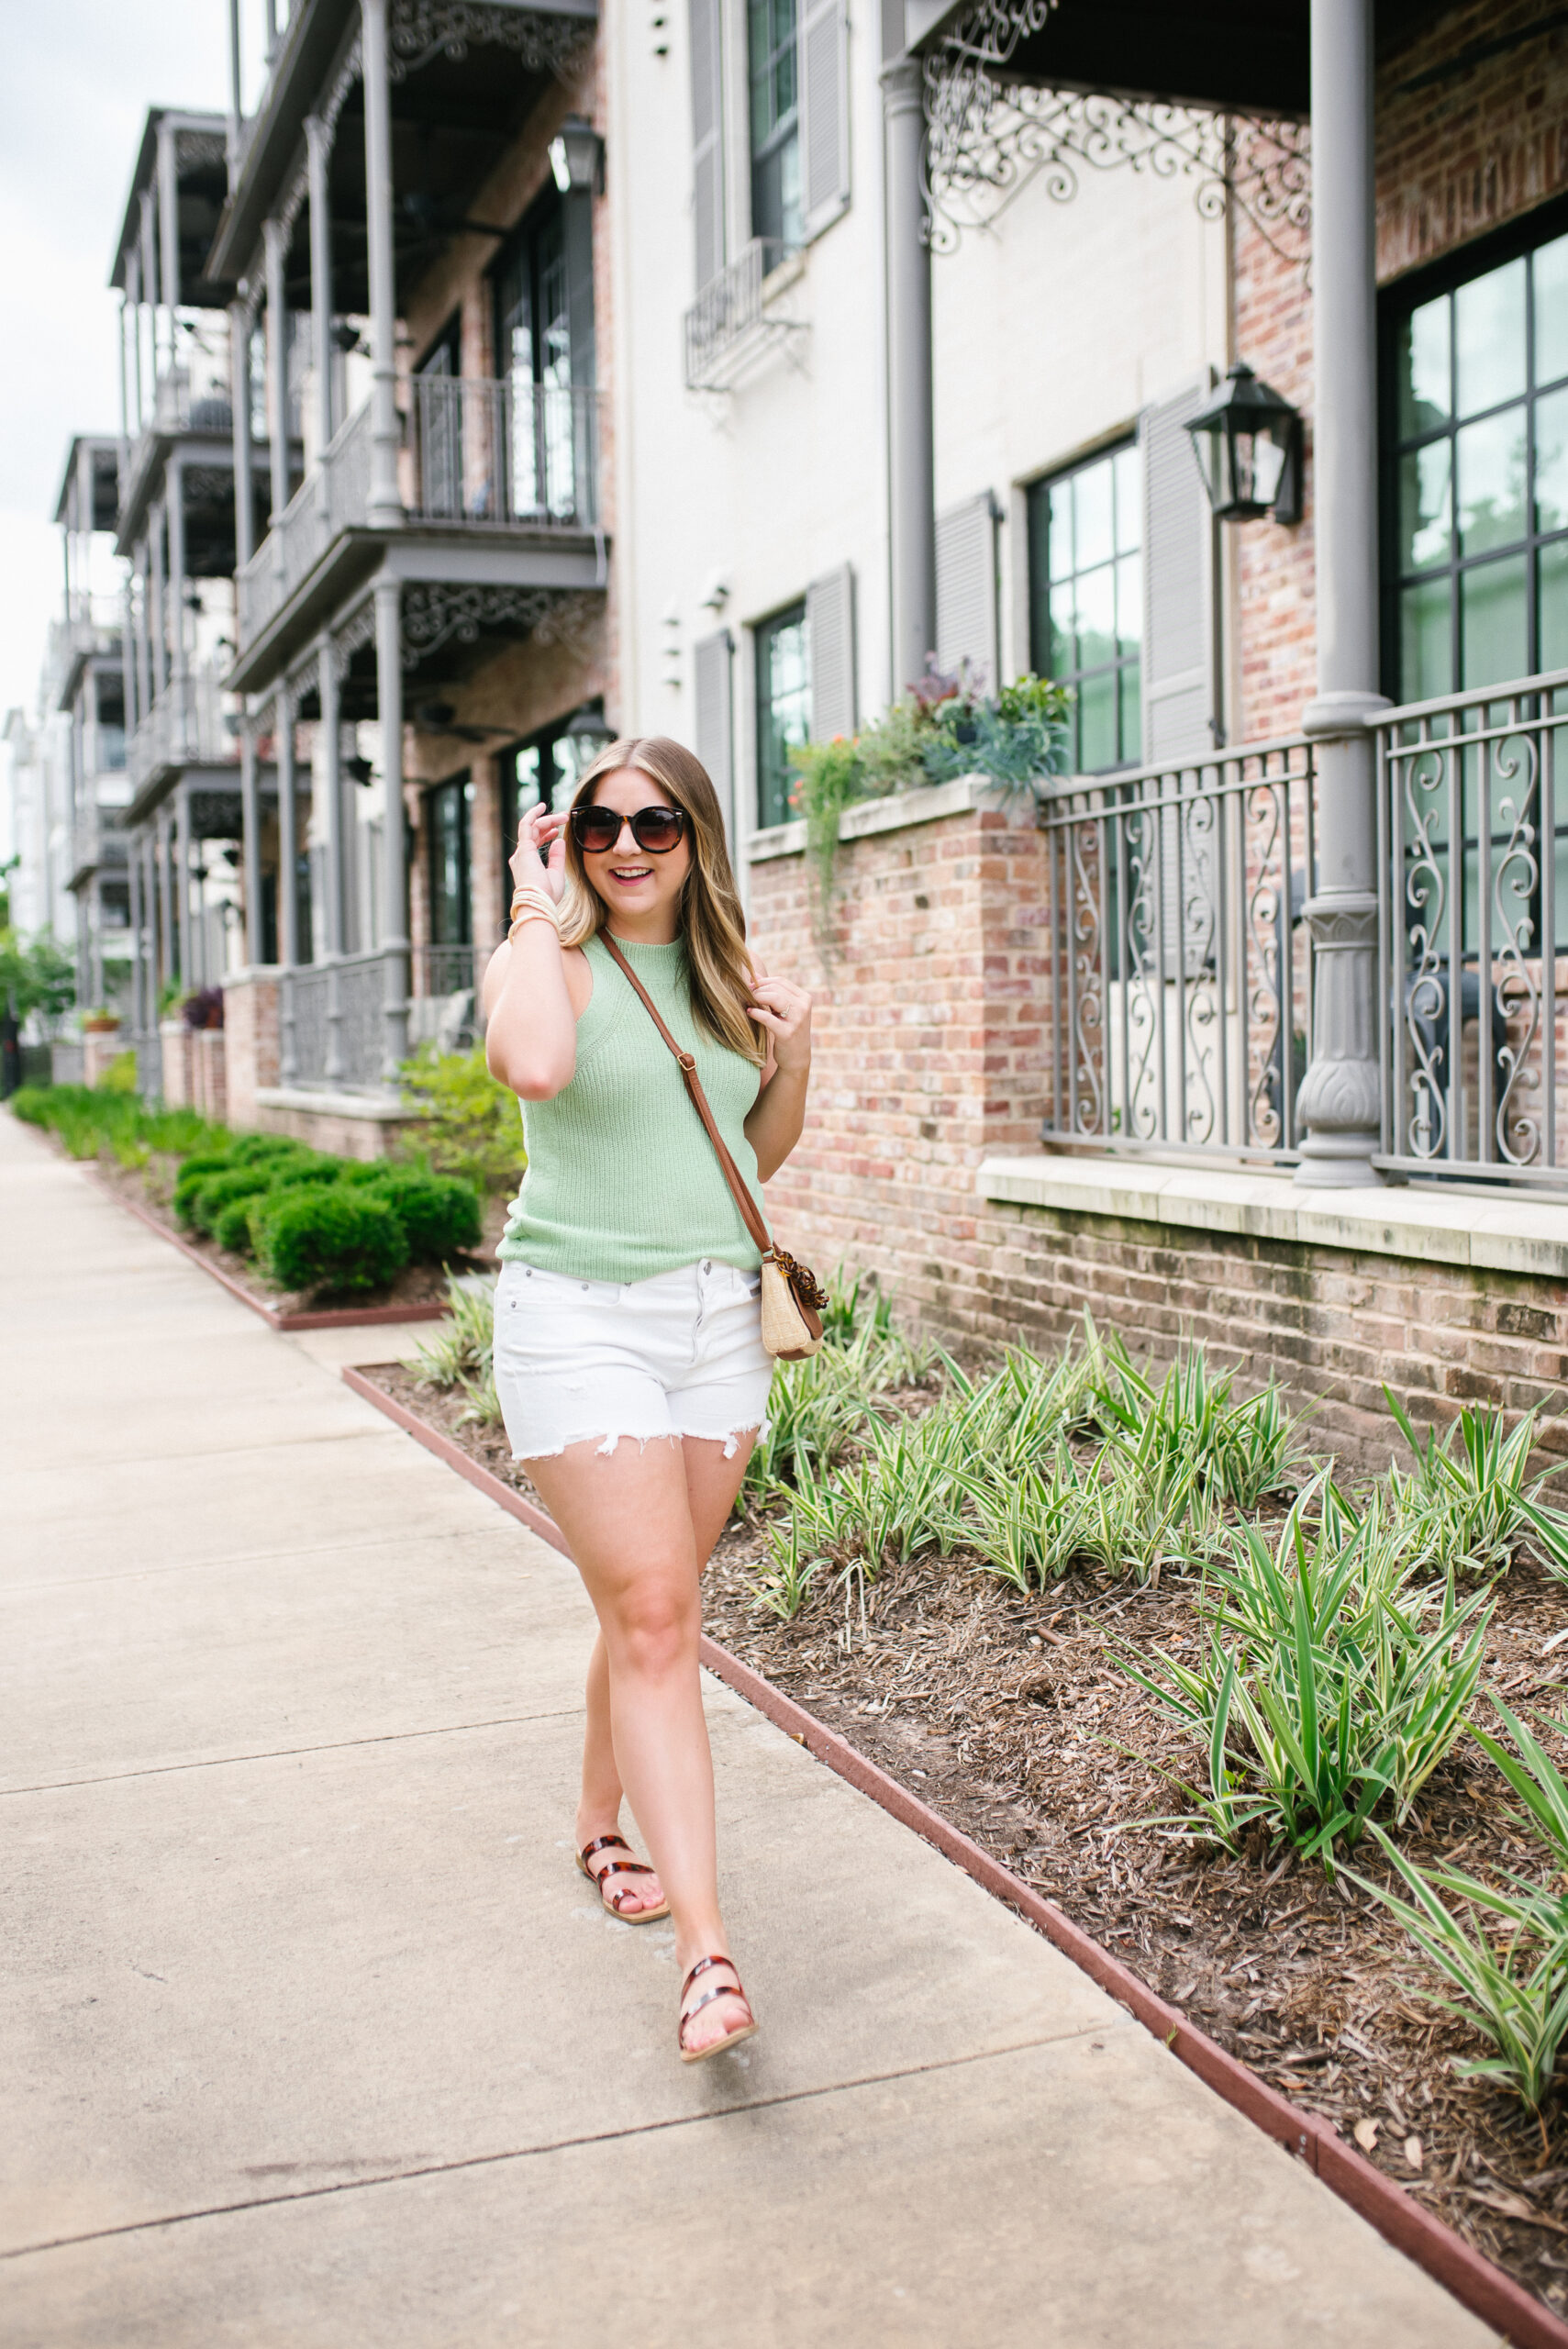 Top 7 Summer Amazon Clothing Purchases